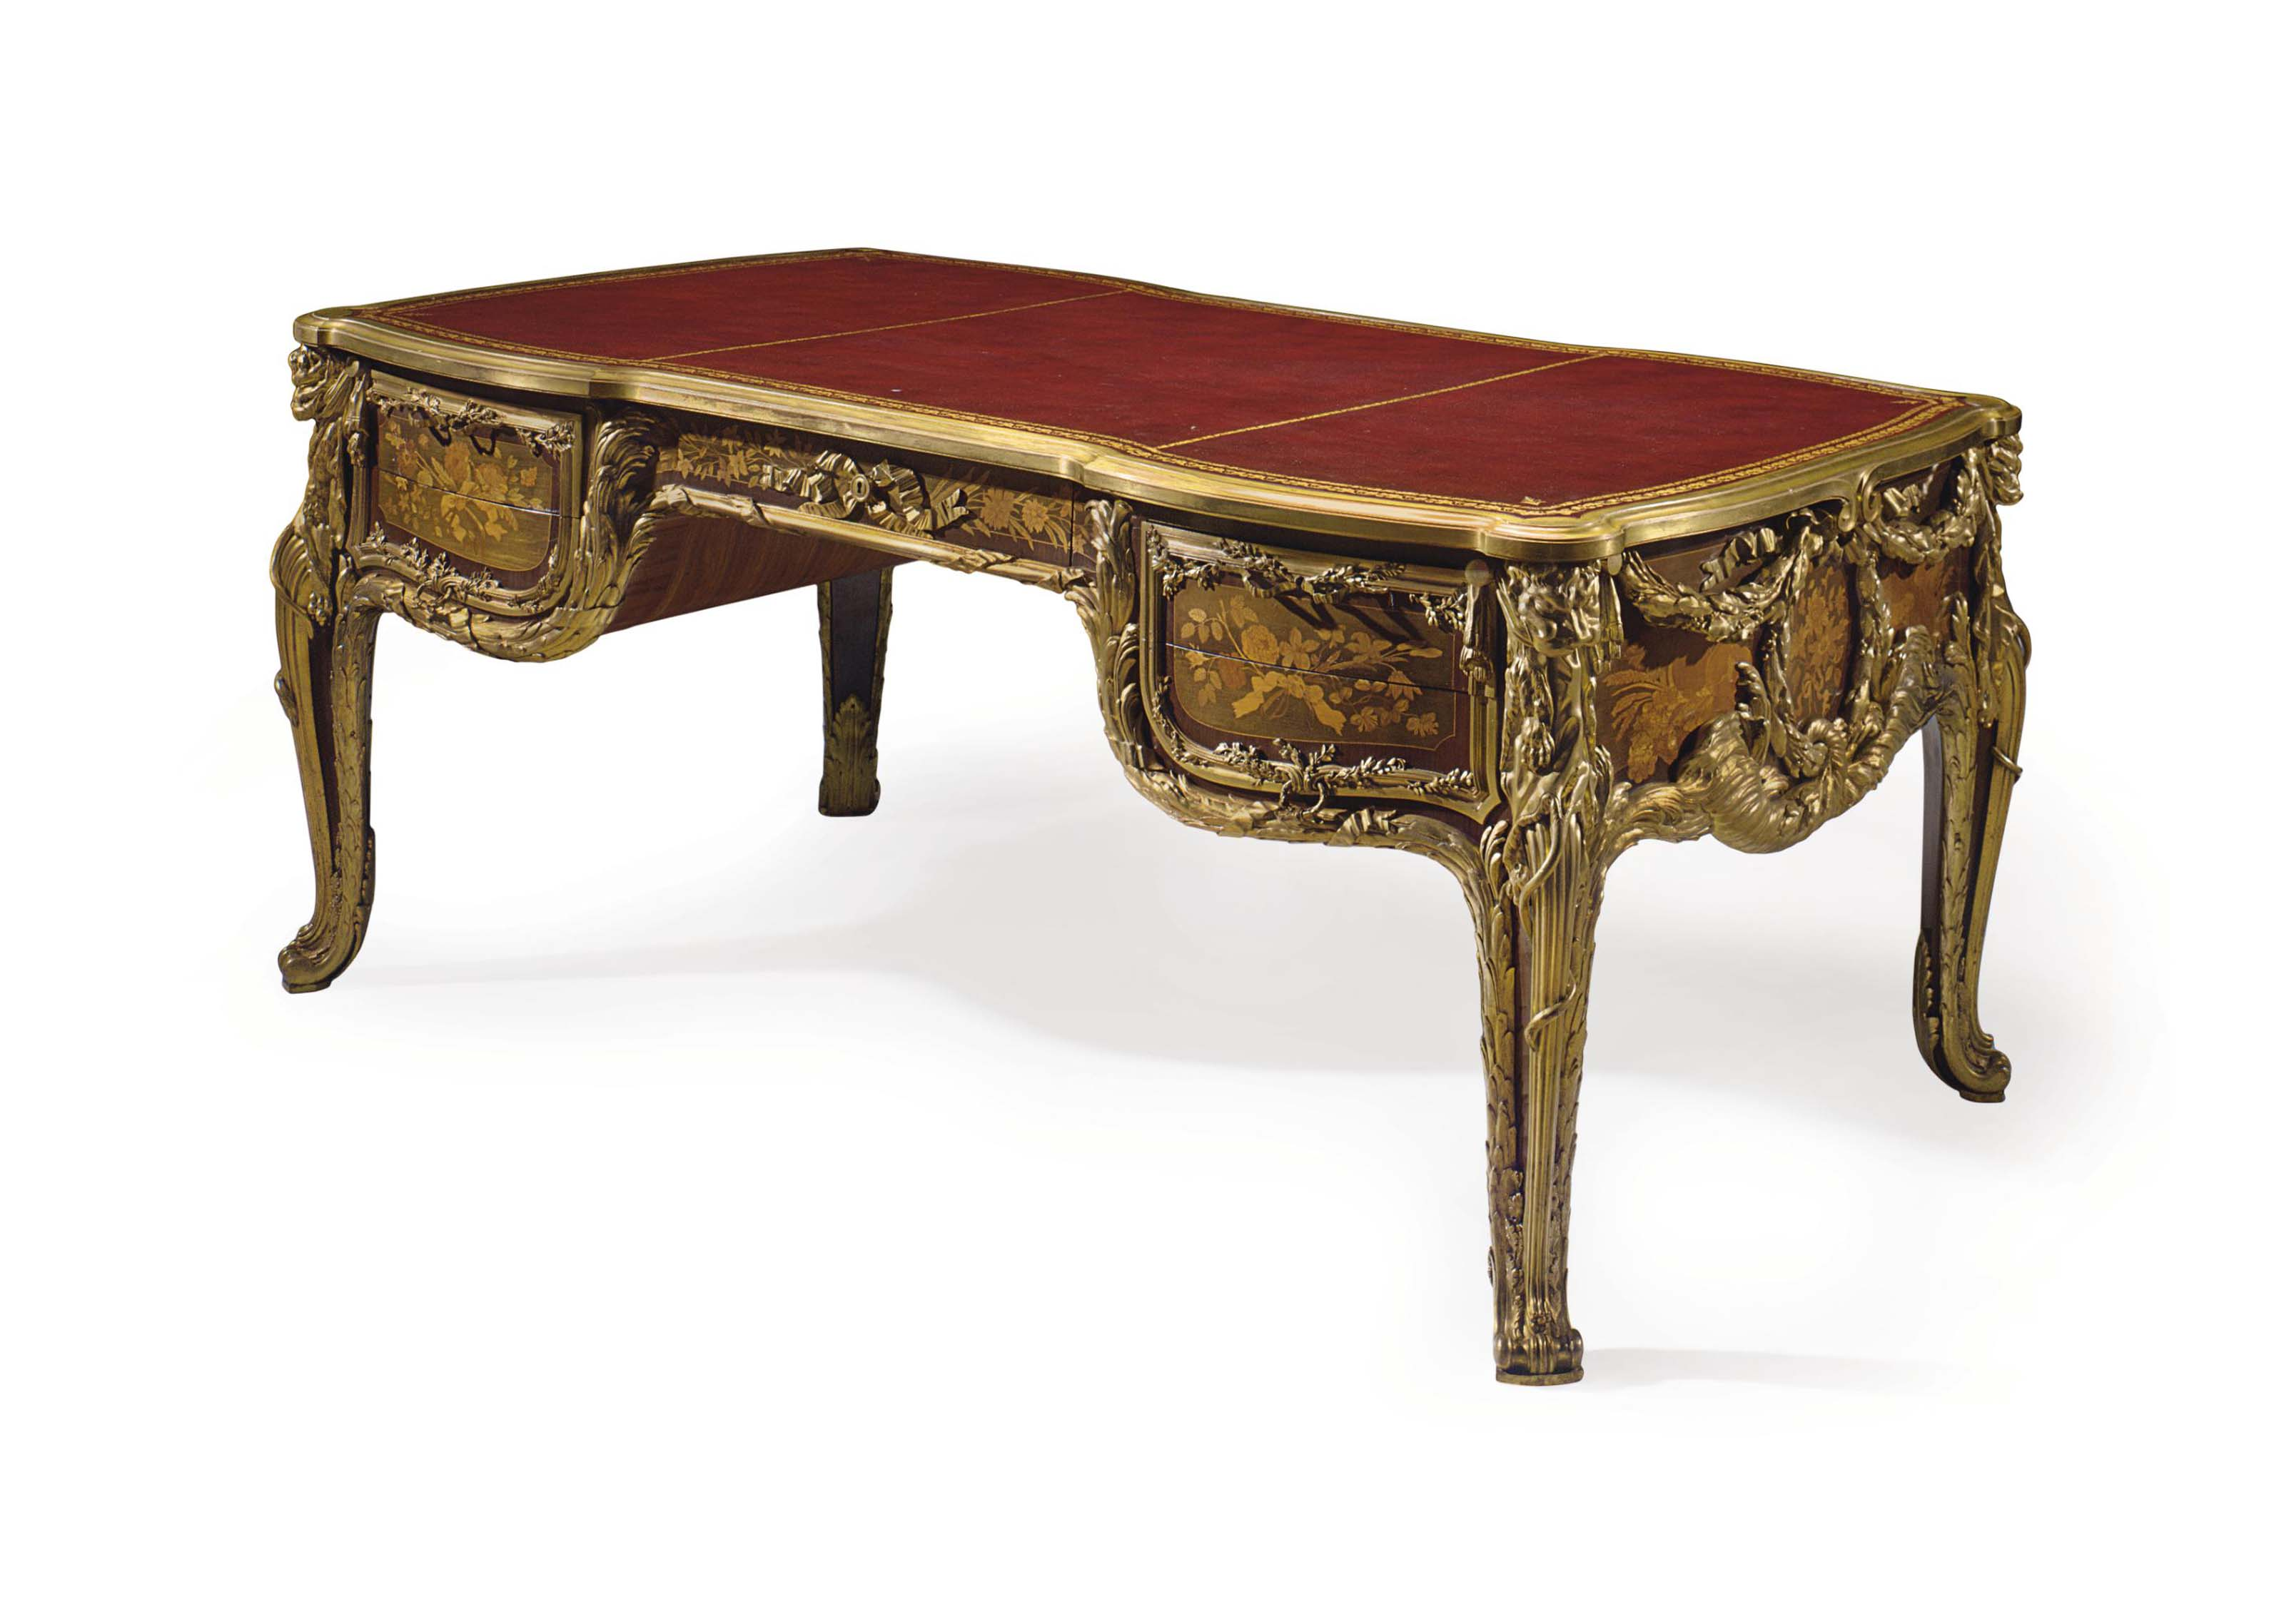 A FINE FRENCH ORMOLU-MOUNTED MAHOGANY, TULIPWOOD, SYCAMORE AND STAINED FRUITWOOD MARQUETRY BUREAU PLAT